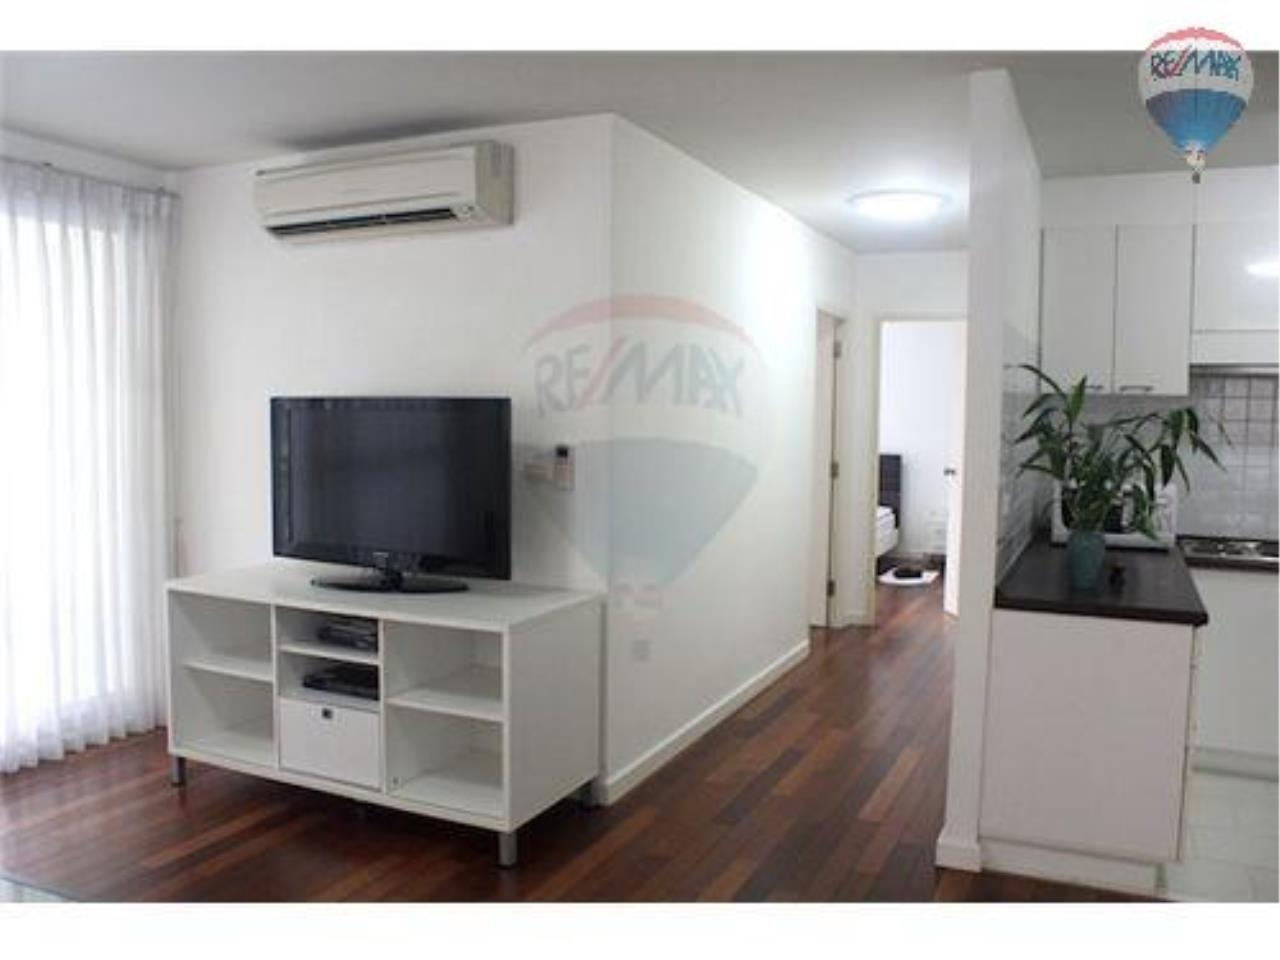 RE/MAX Properties Agency's 2 Bedroom Apartment- Sukhumvit Soi 49 6